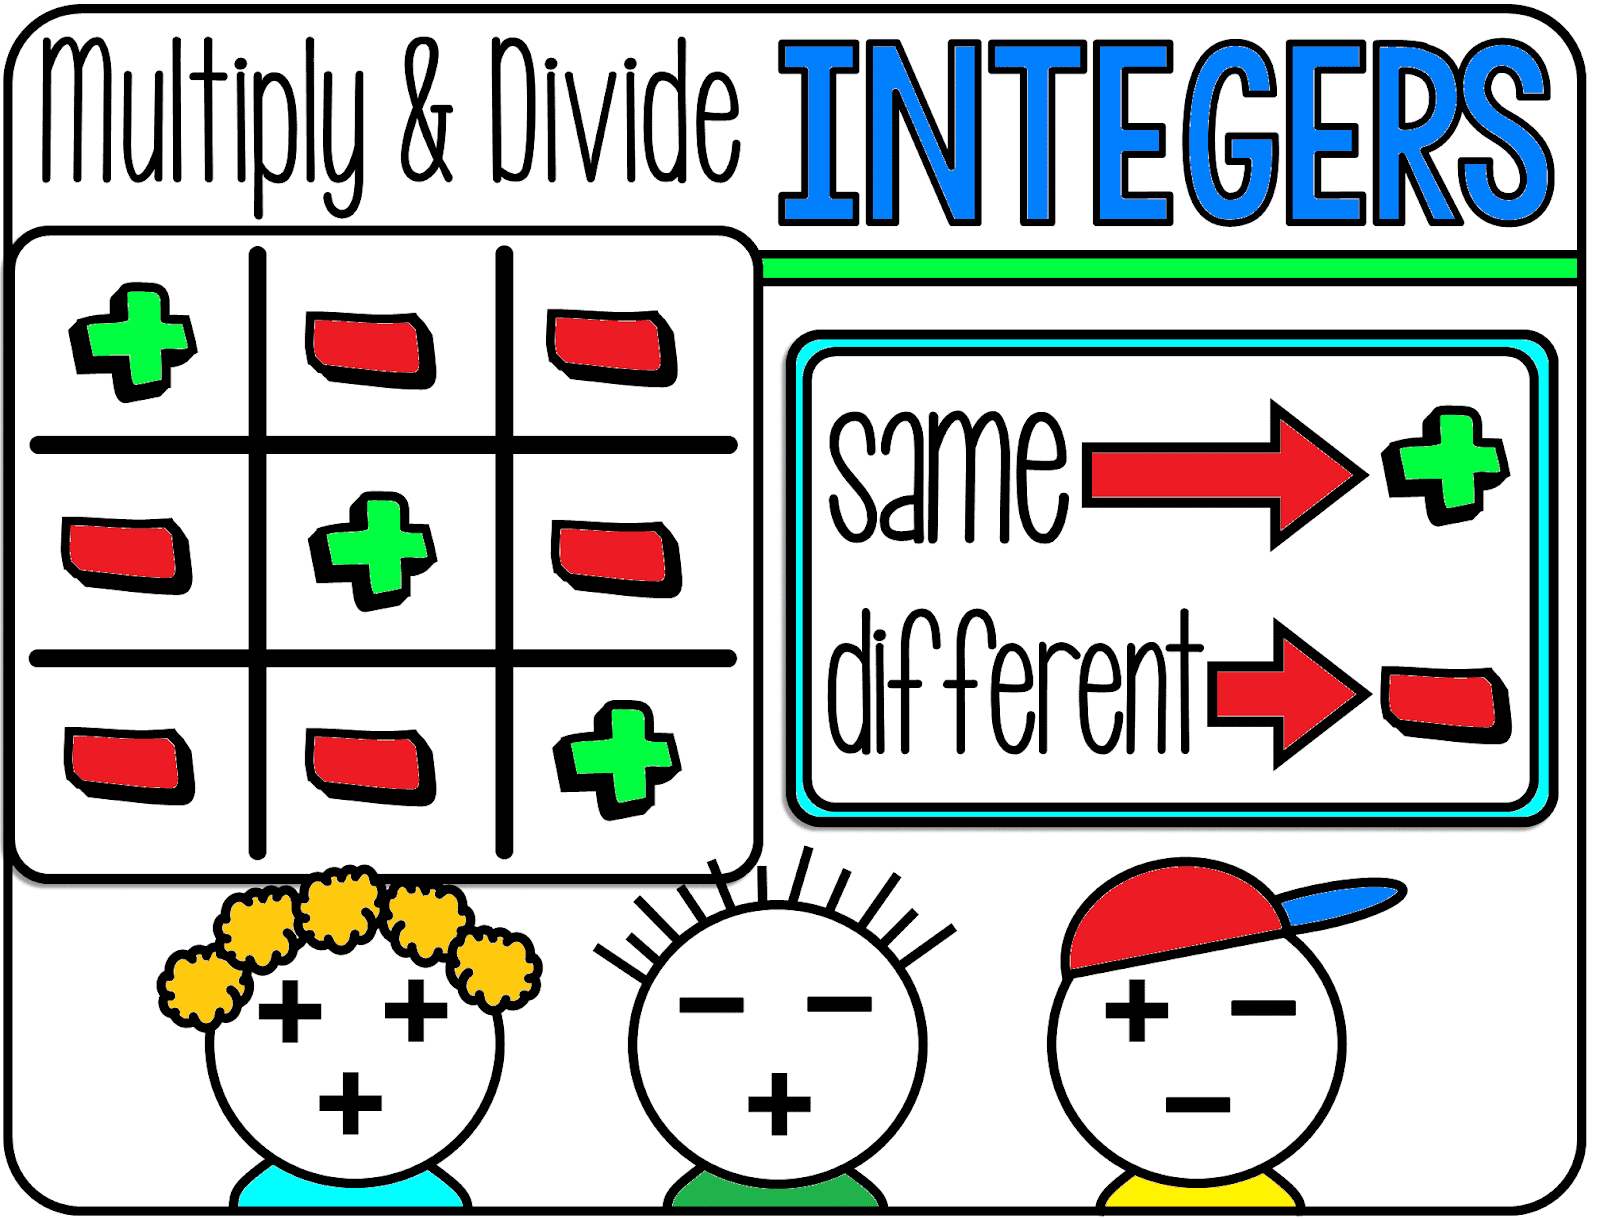 Scaffolded Math And Science Integer Rules Visual